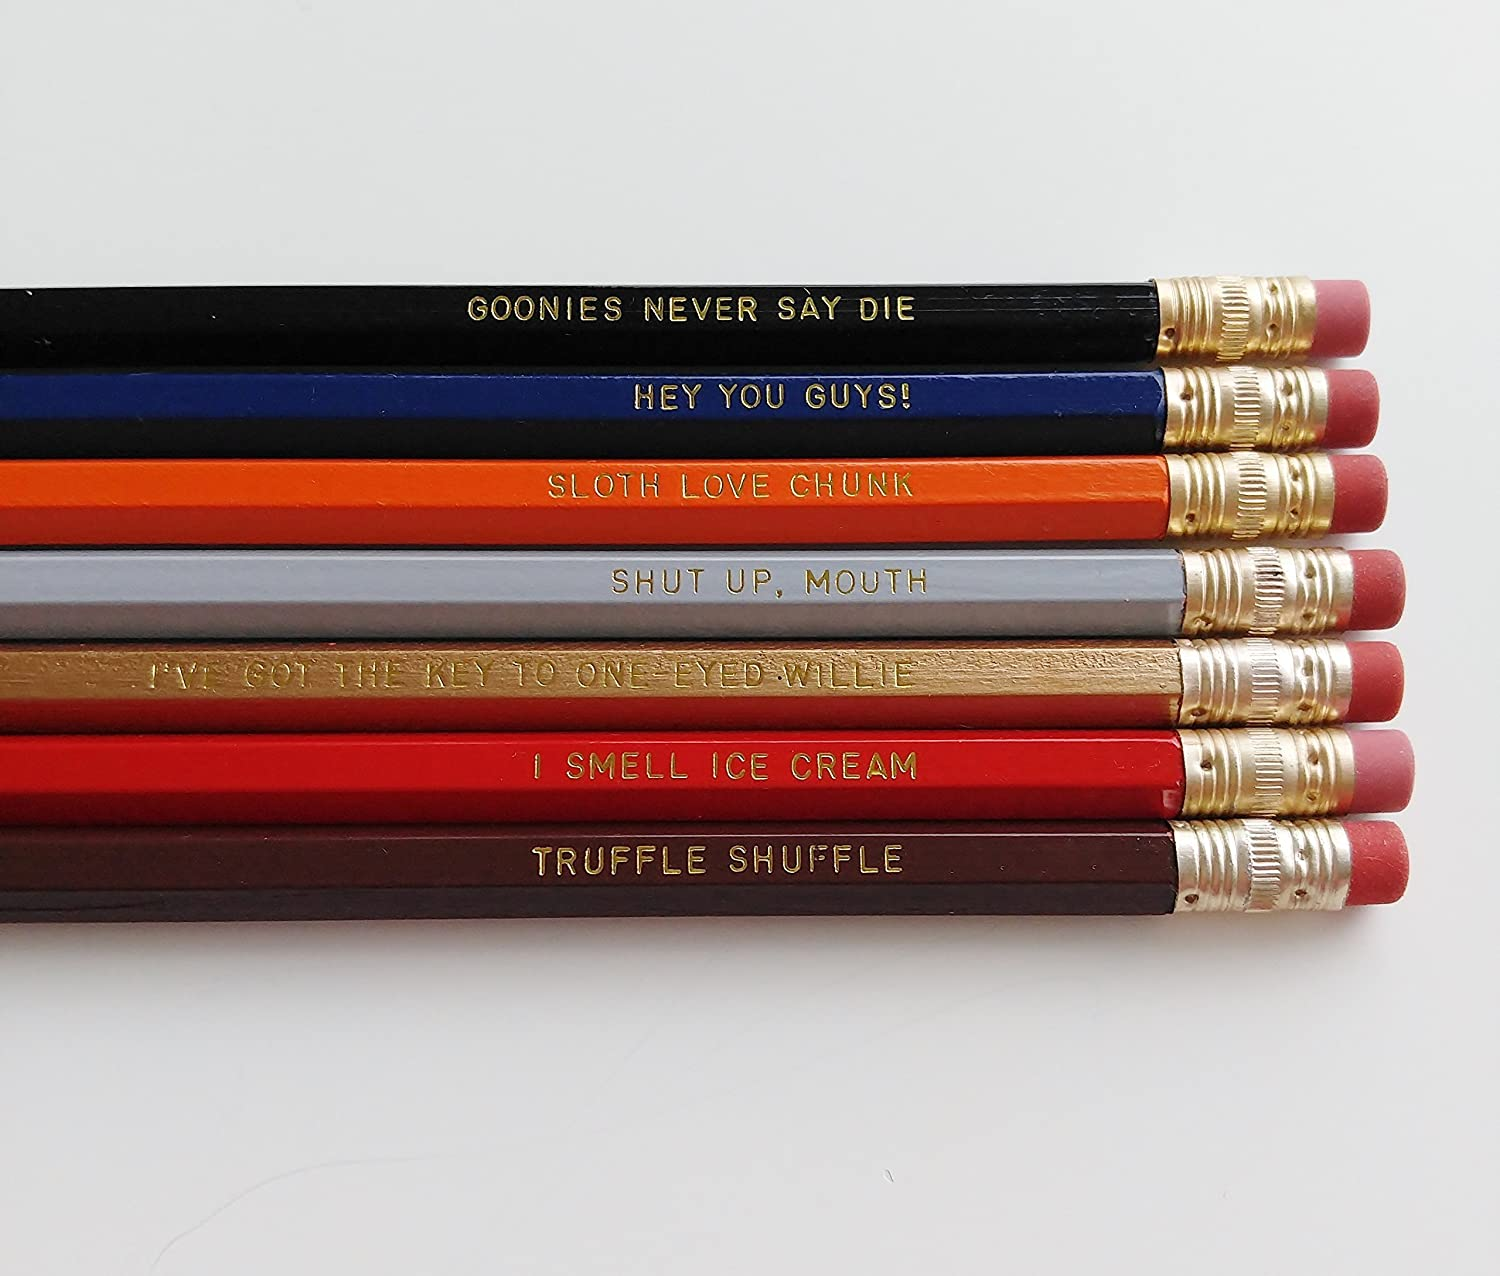 Goonies Engraved Pencil Set Goonies Gift Gold Foil Pencil Set Engraved Pencils Funny Pencils Hey You Guys Gift for Student Gift for Him